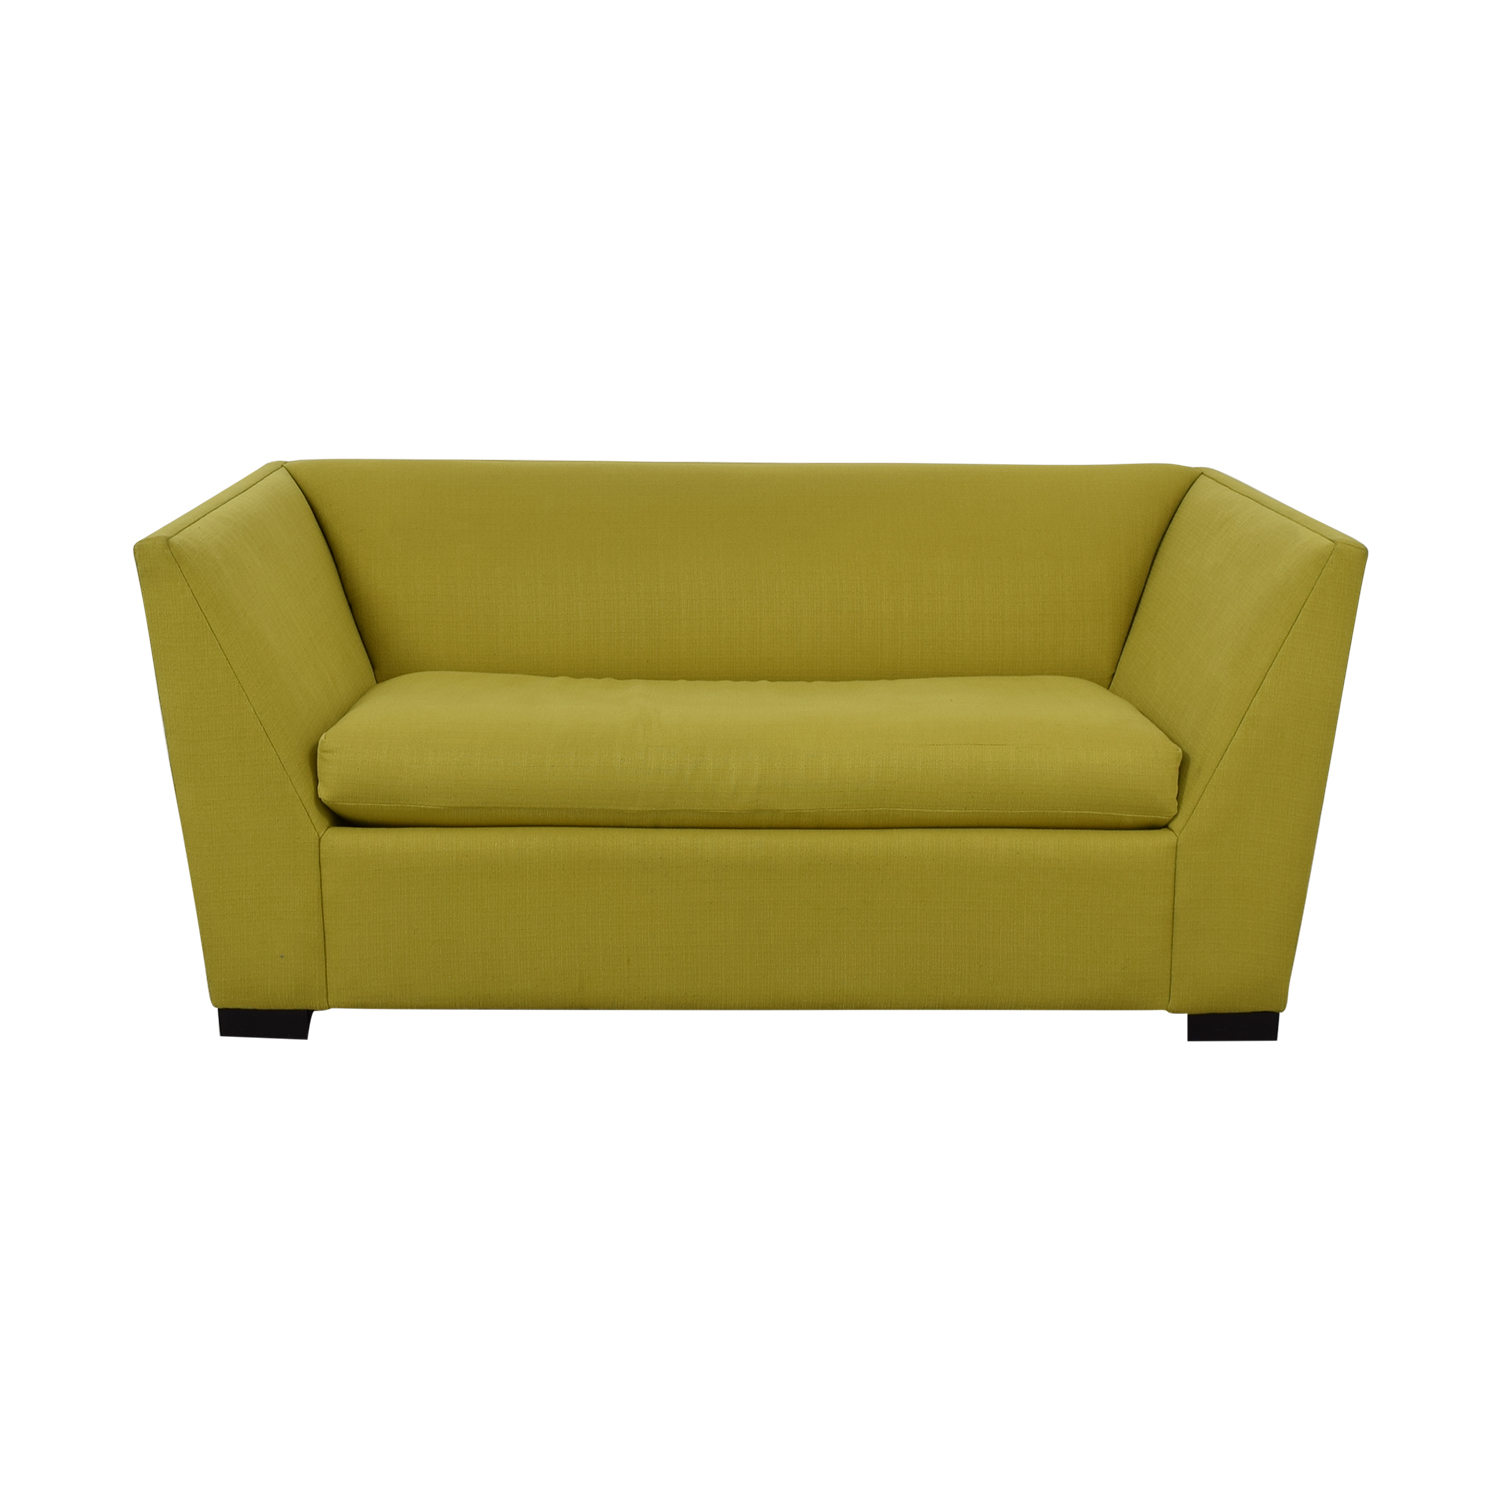 CB2 CB2 Twin Sleeper Loveseat yellow